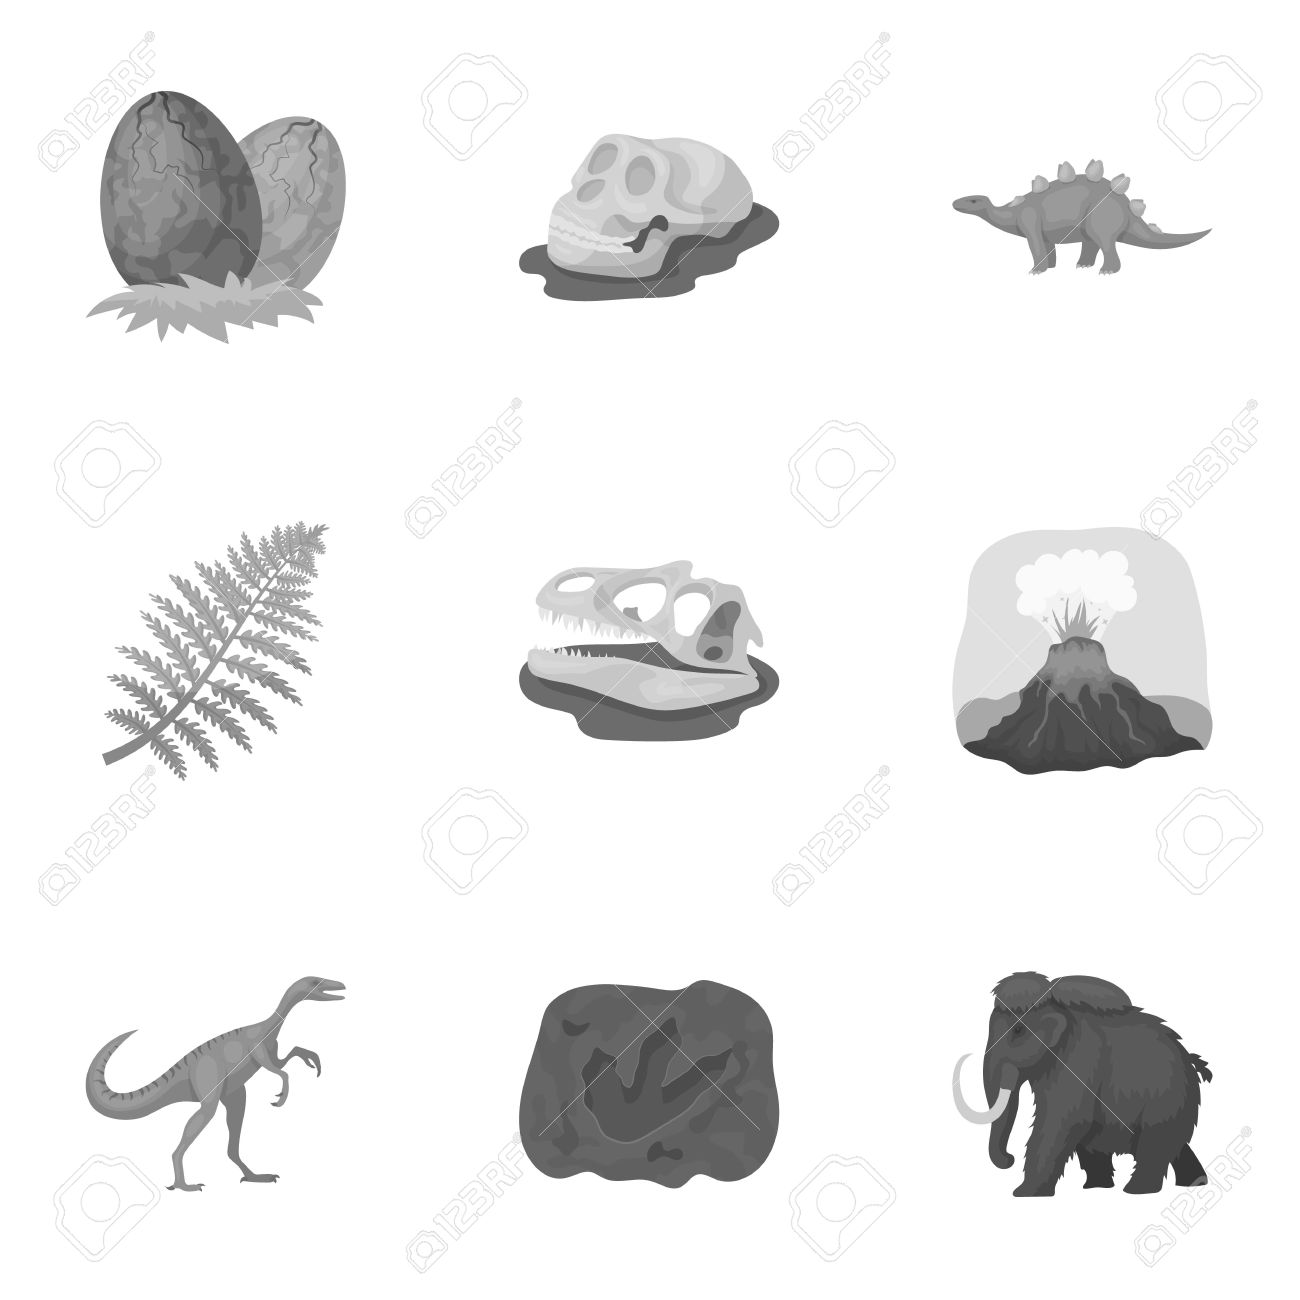 Image of: Mammals Ancient Extinct Animals And Their Tracks And Remains Dinosaurs Tyrannosaurs Pnictosaursdinisaurs 123rfcom Ancient Extinct Animals And Their Tracks And Remains Dinosaurs